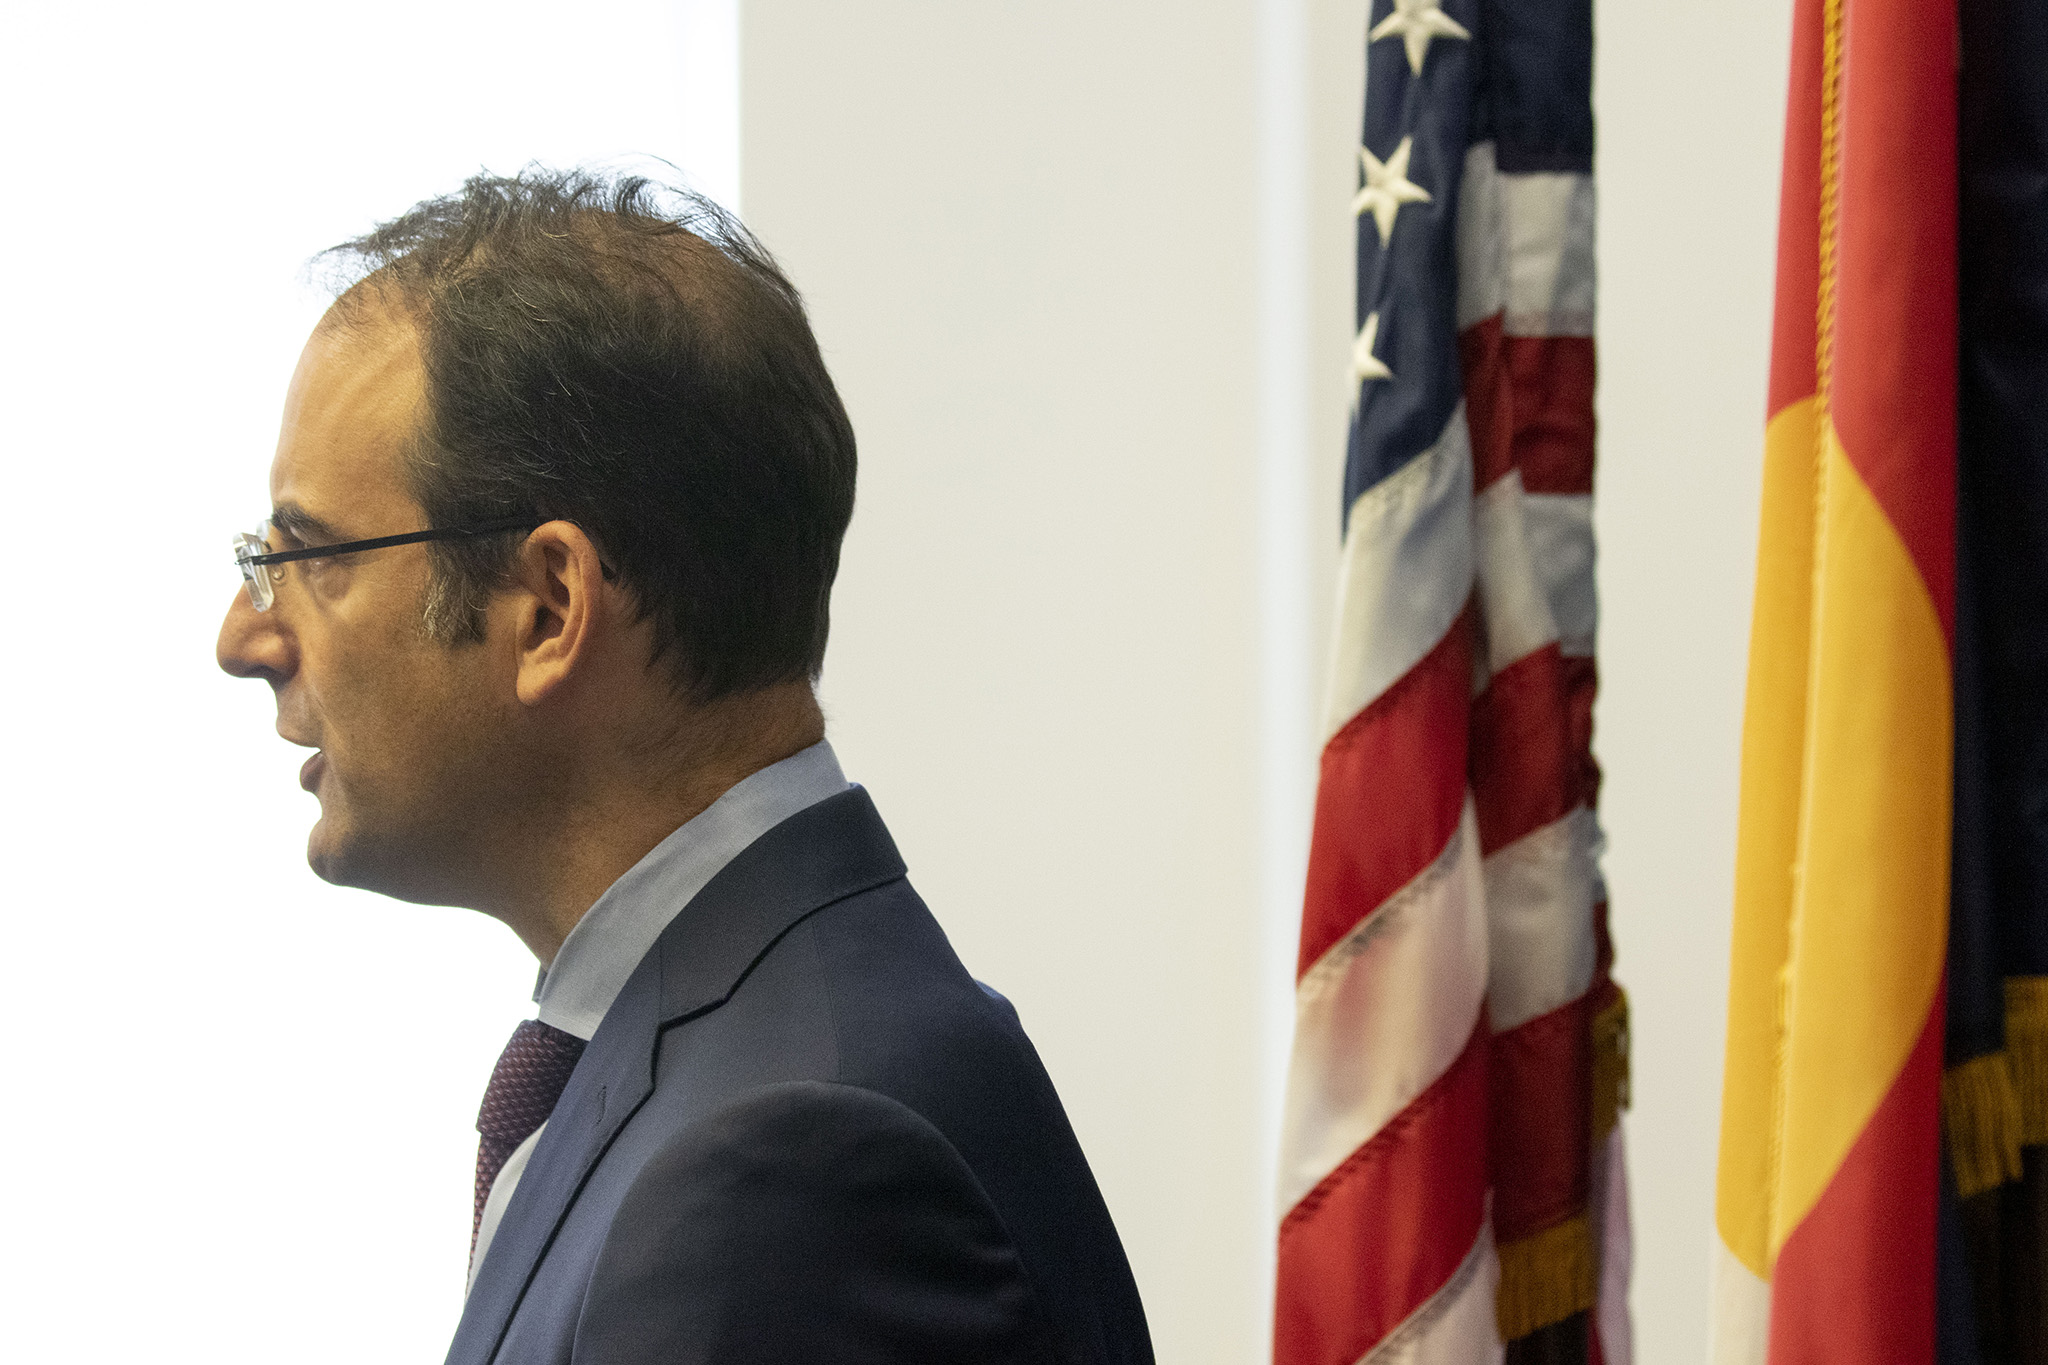 Attorney General Phil Weiser addresses press after a grand jury formerly indicted three police officers and two paramedics involved in Elijah McClain's death in 2019. Sept. 1, 2021.